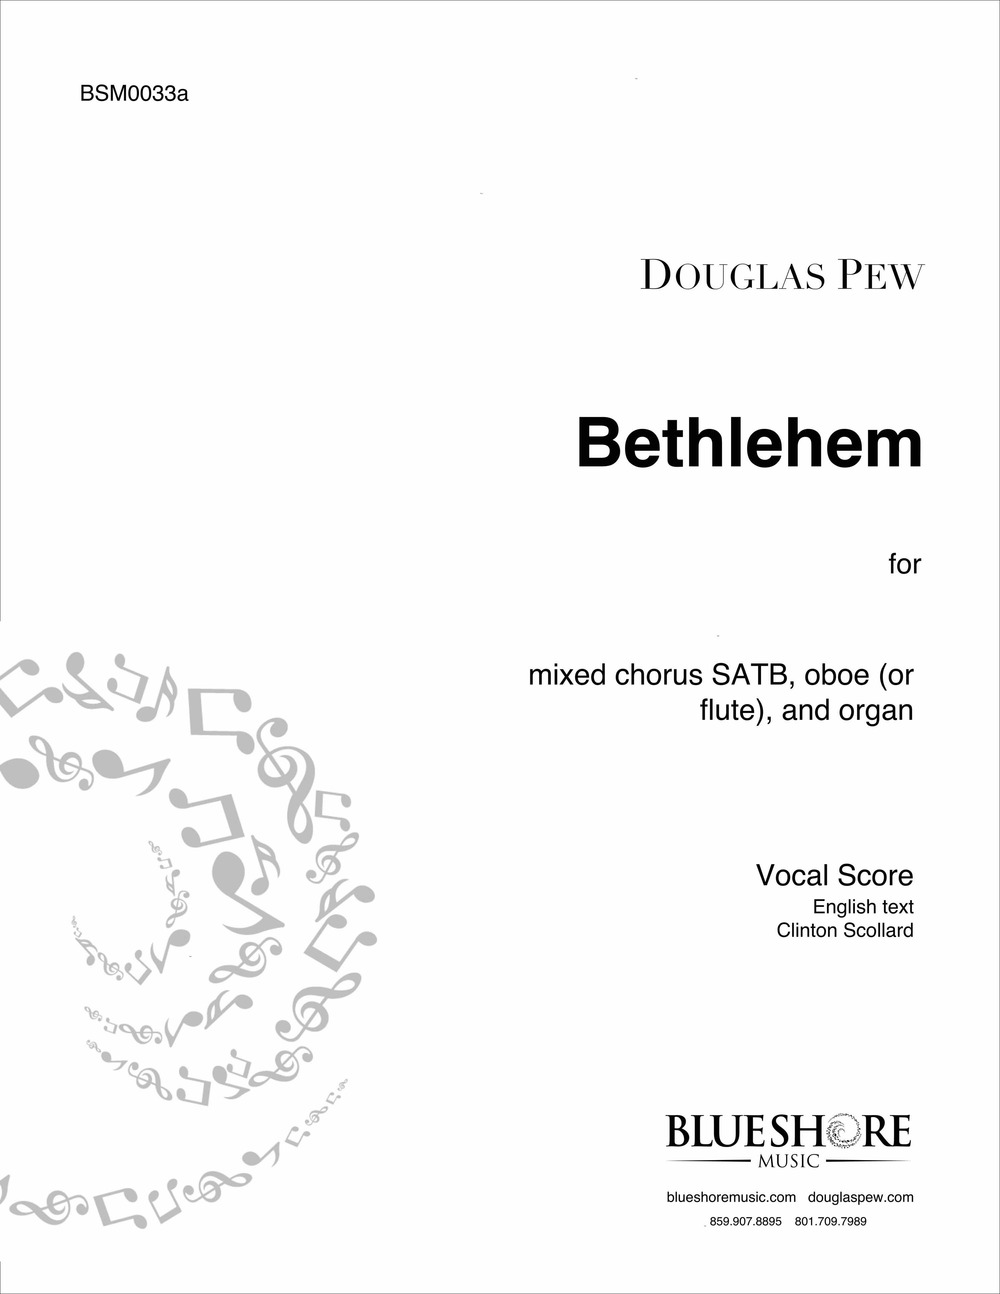 Bethlehem - Christmas Carol for Mixed Chorus, Oboe (or Flute), and Organ